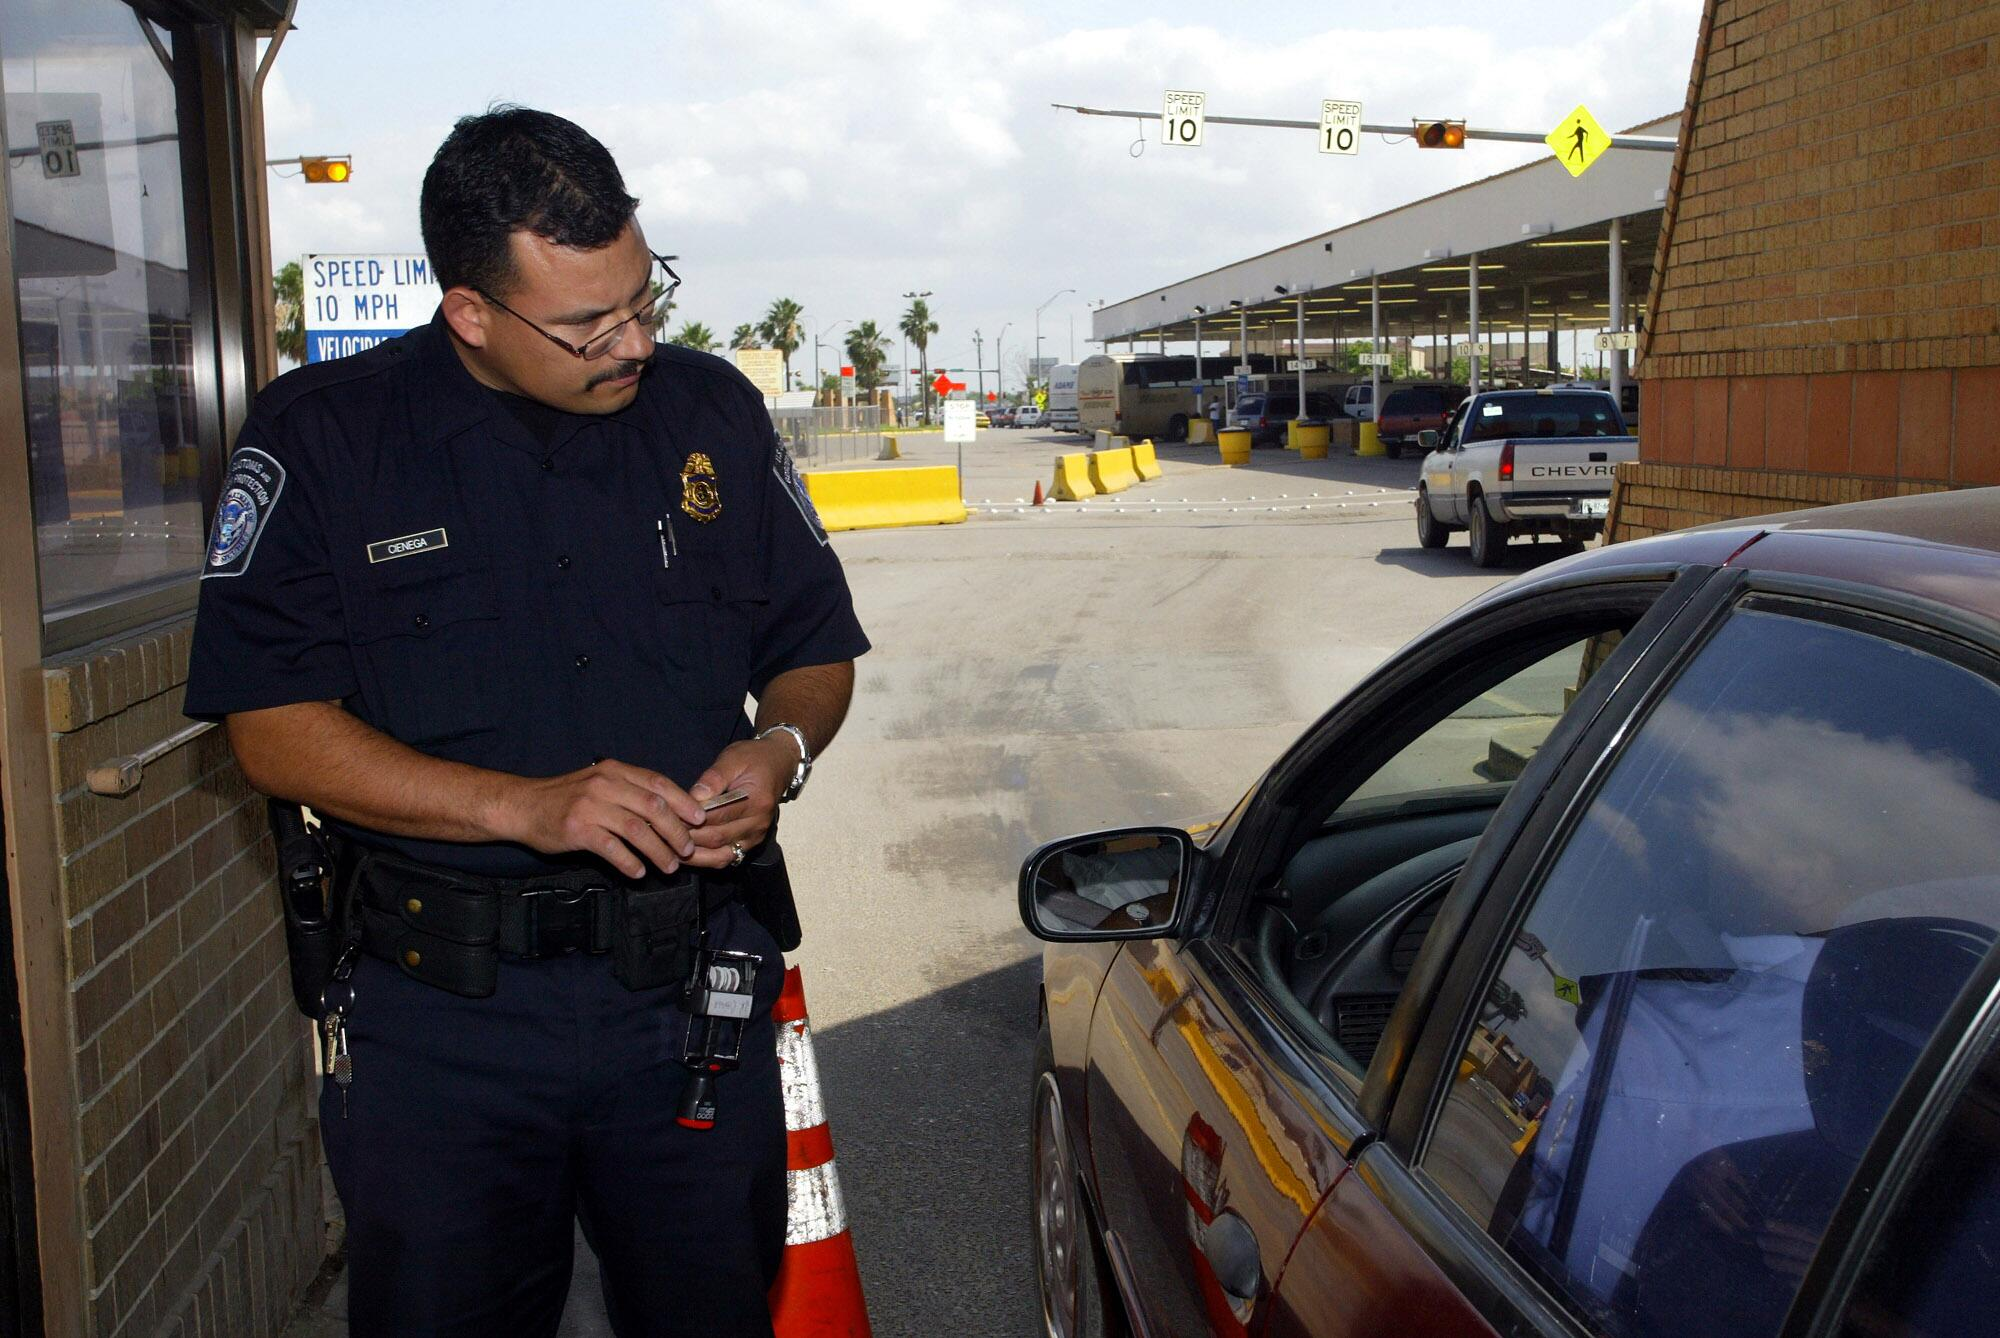 A CBP officer speaks with individuals as they enter the United States.